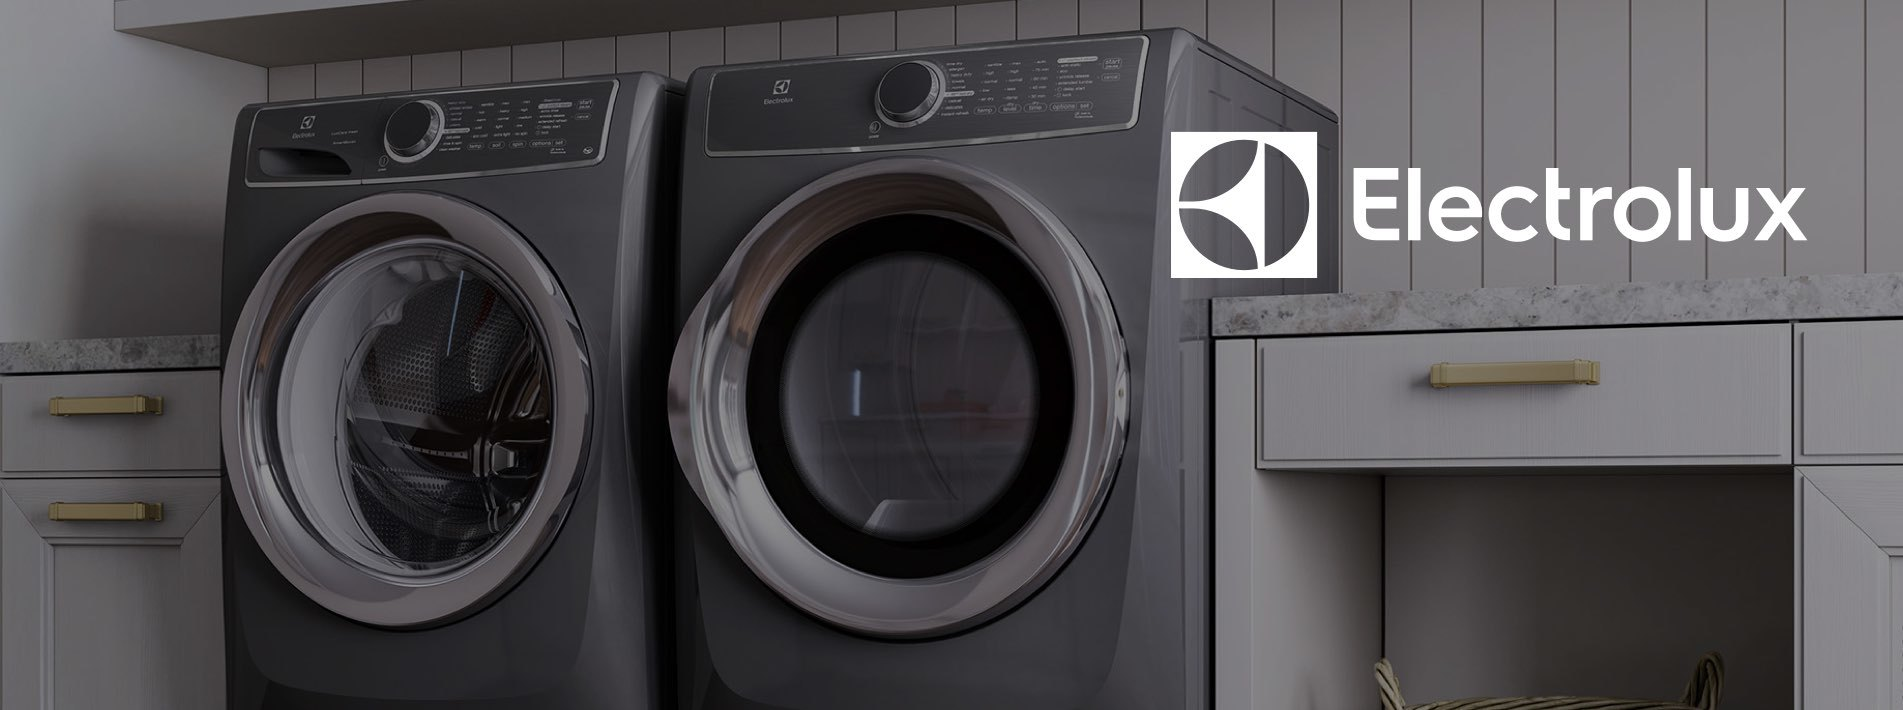 Electrolux Banner